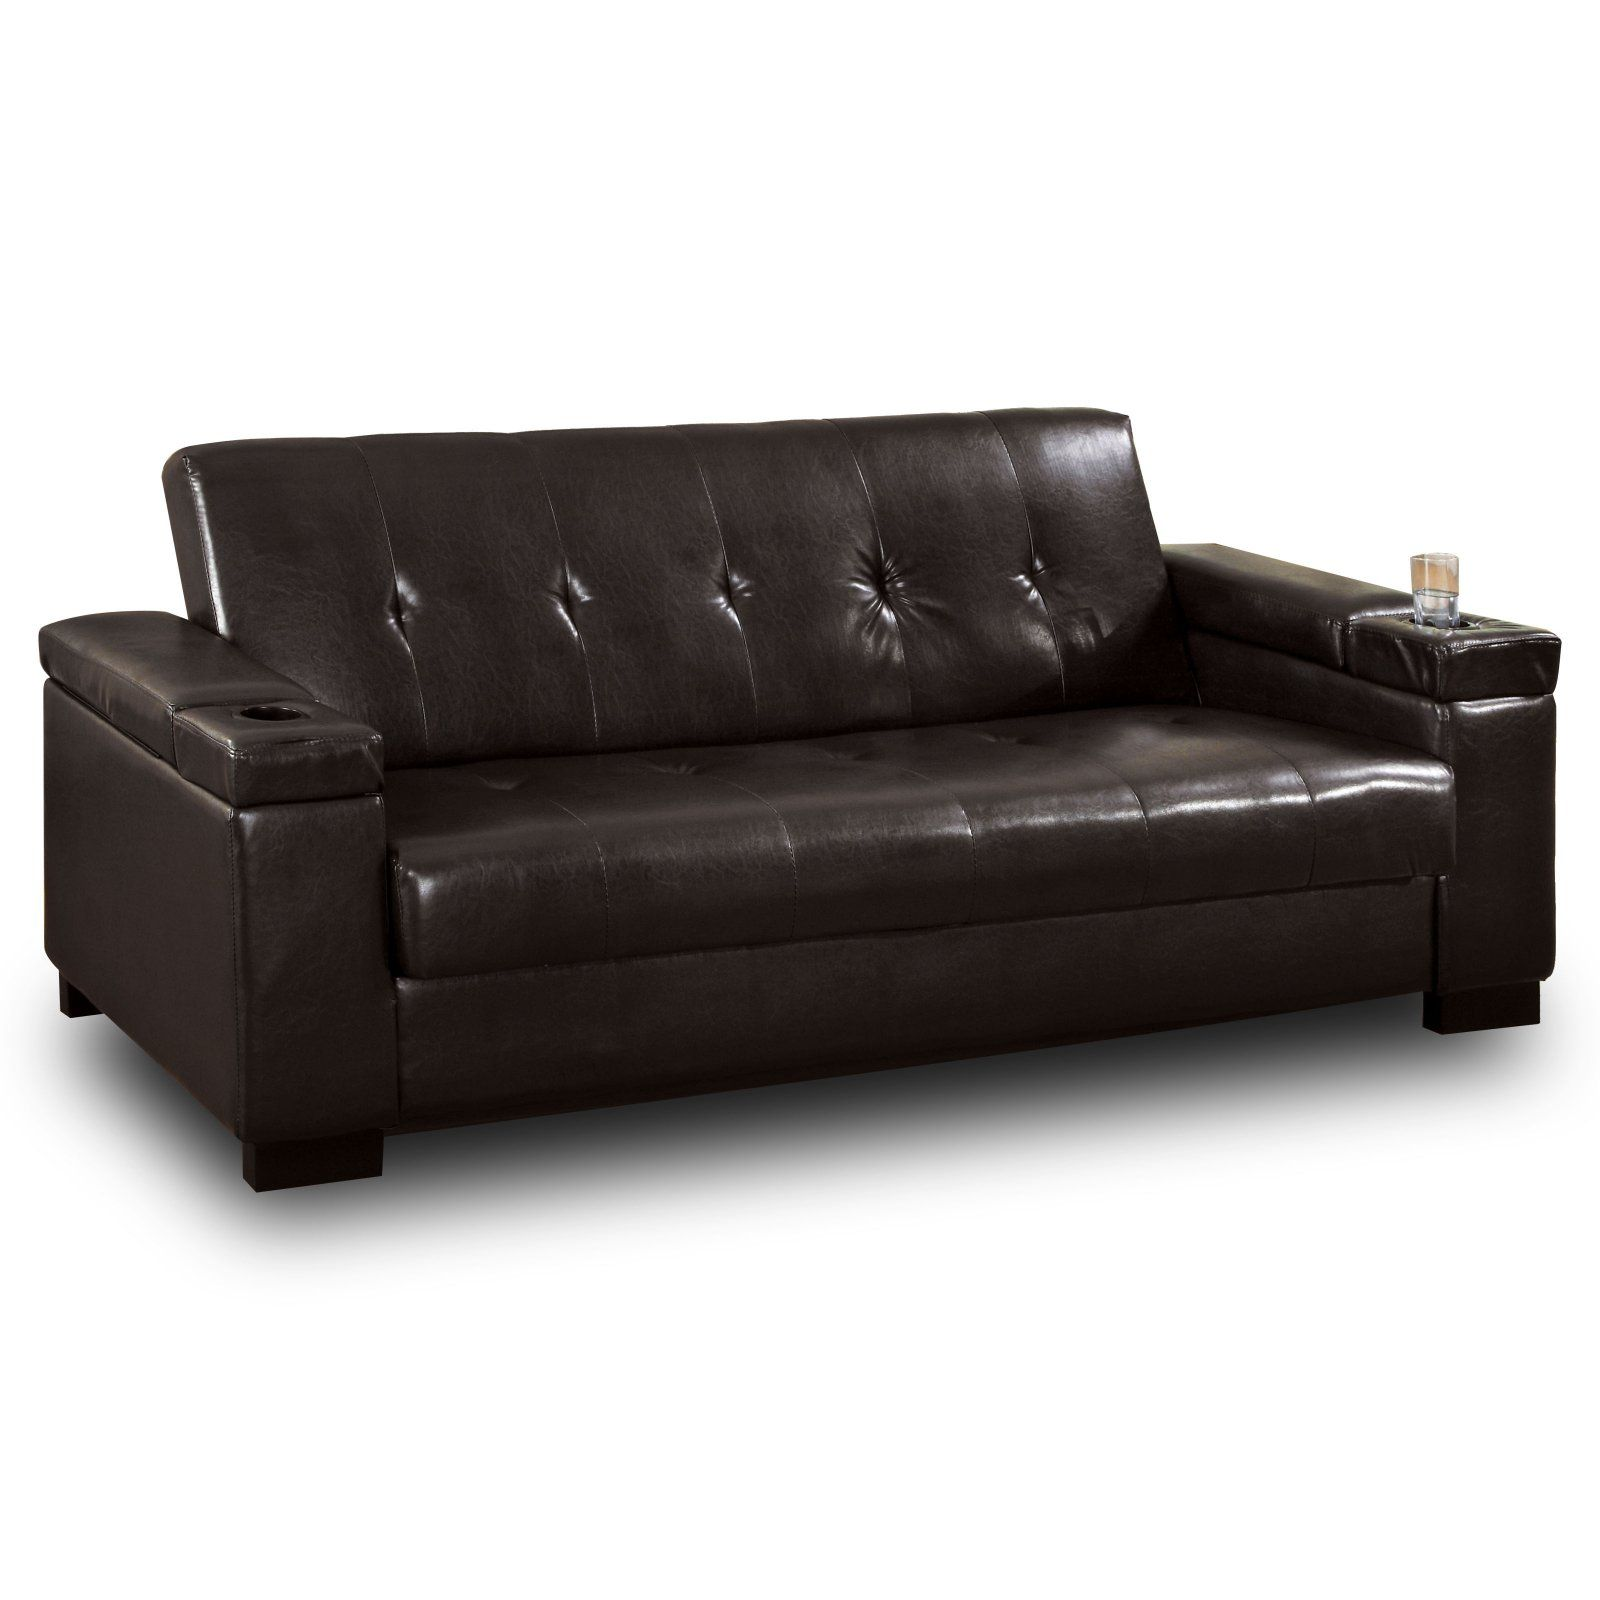 Morgan Espresso Bi Cast Leather Futon With Storage At The Foundary Okay Is But This A Huge Improvement On Your Standard